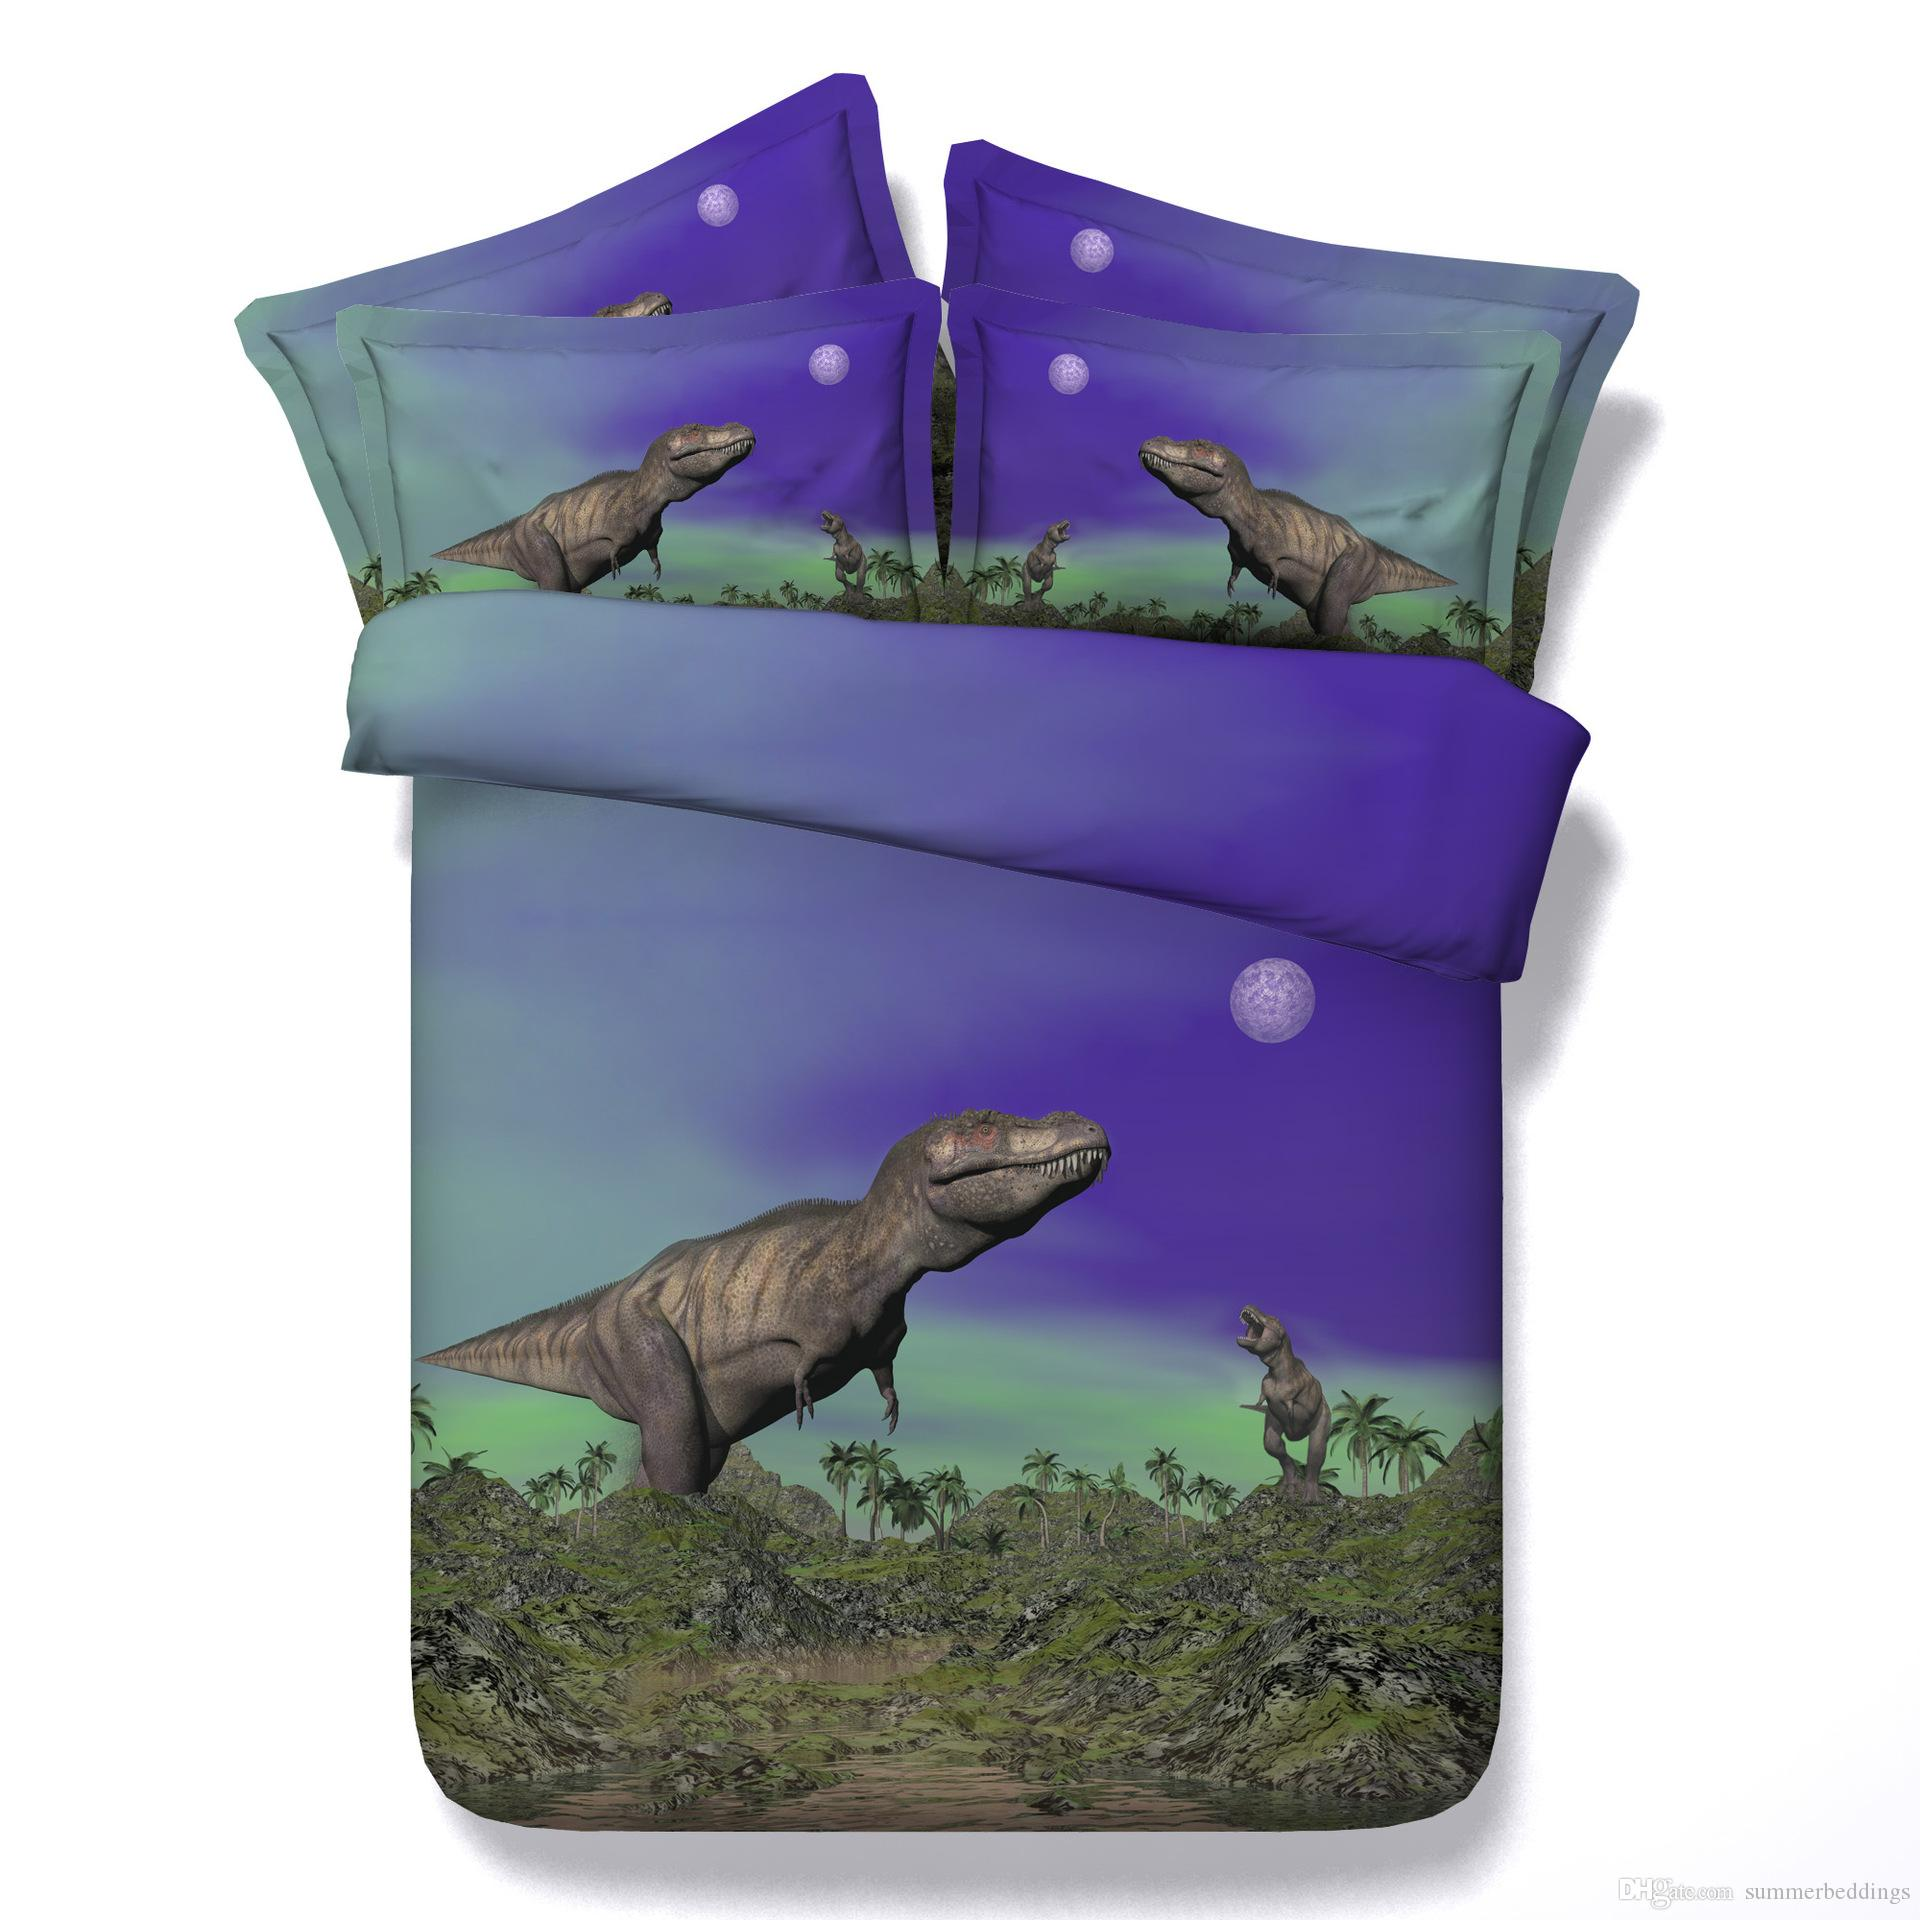 3D Dinosaur bedding sets queen christmas duvet cover single twin king cal king size bedspreads animal bedlinens home textiles pillow shams